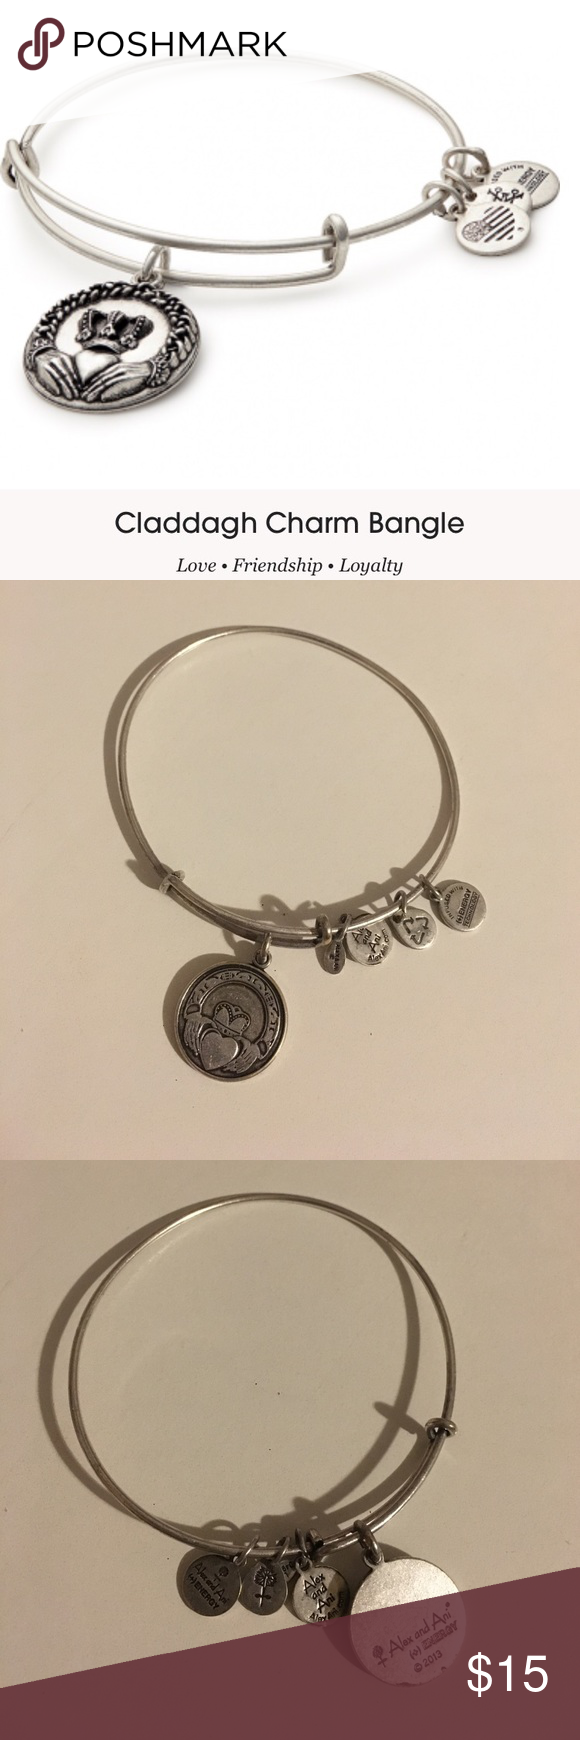 ALEX & ANI Claddagh silver charm bracelet! Rare Alex & Ani claddagh charm bracelet in silver tone. Worn a few times. Details about charm meaning in pictures! Alex & Ani Jewelry Bracelets